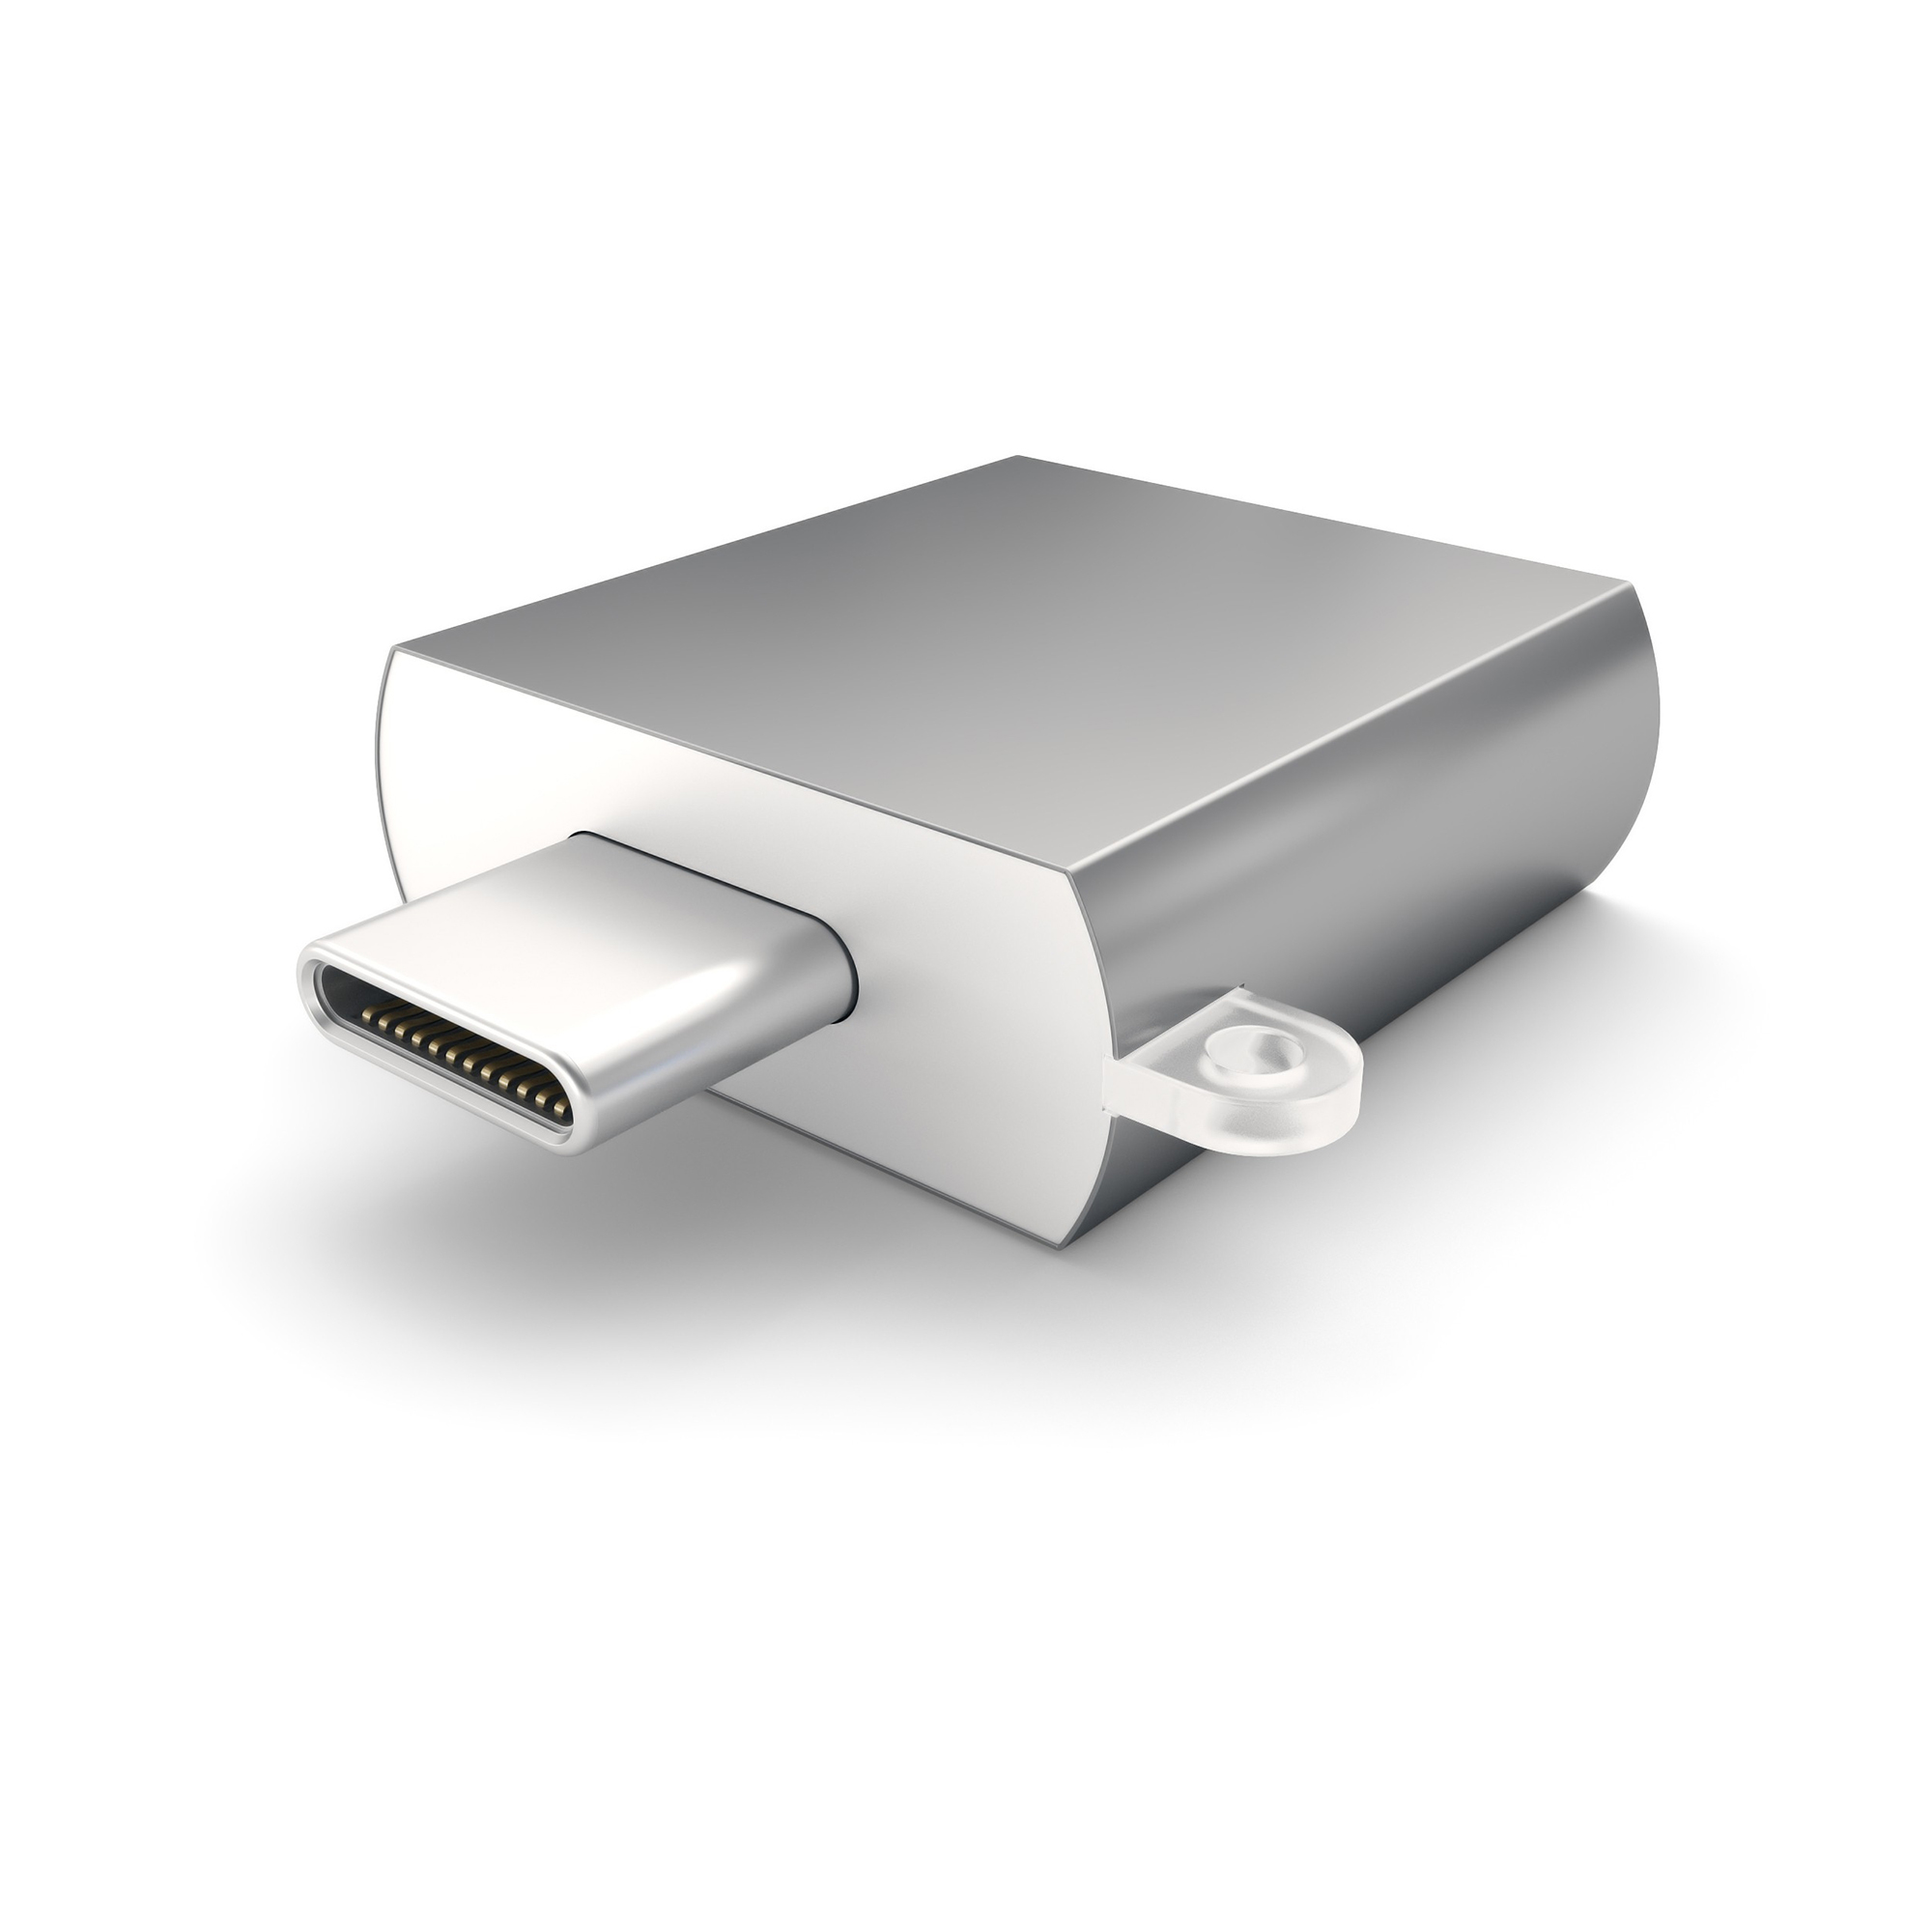 Фото - Адаптер Satechi USB 3.0 Type-C to USB 3.0 Type-A Space Gray ST-TCUAM ugreen usb c to usb type c for samsung s20 pd 60w cable for macbook pro ipad pro2020 quick charge 4 0 usb c fast usb charge cord